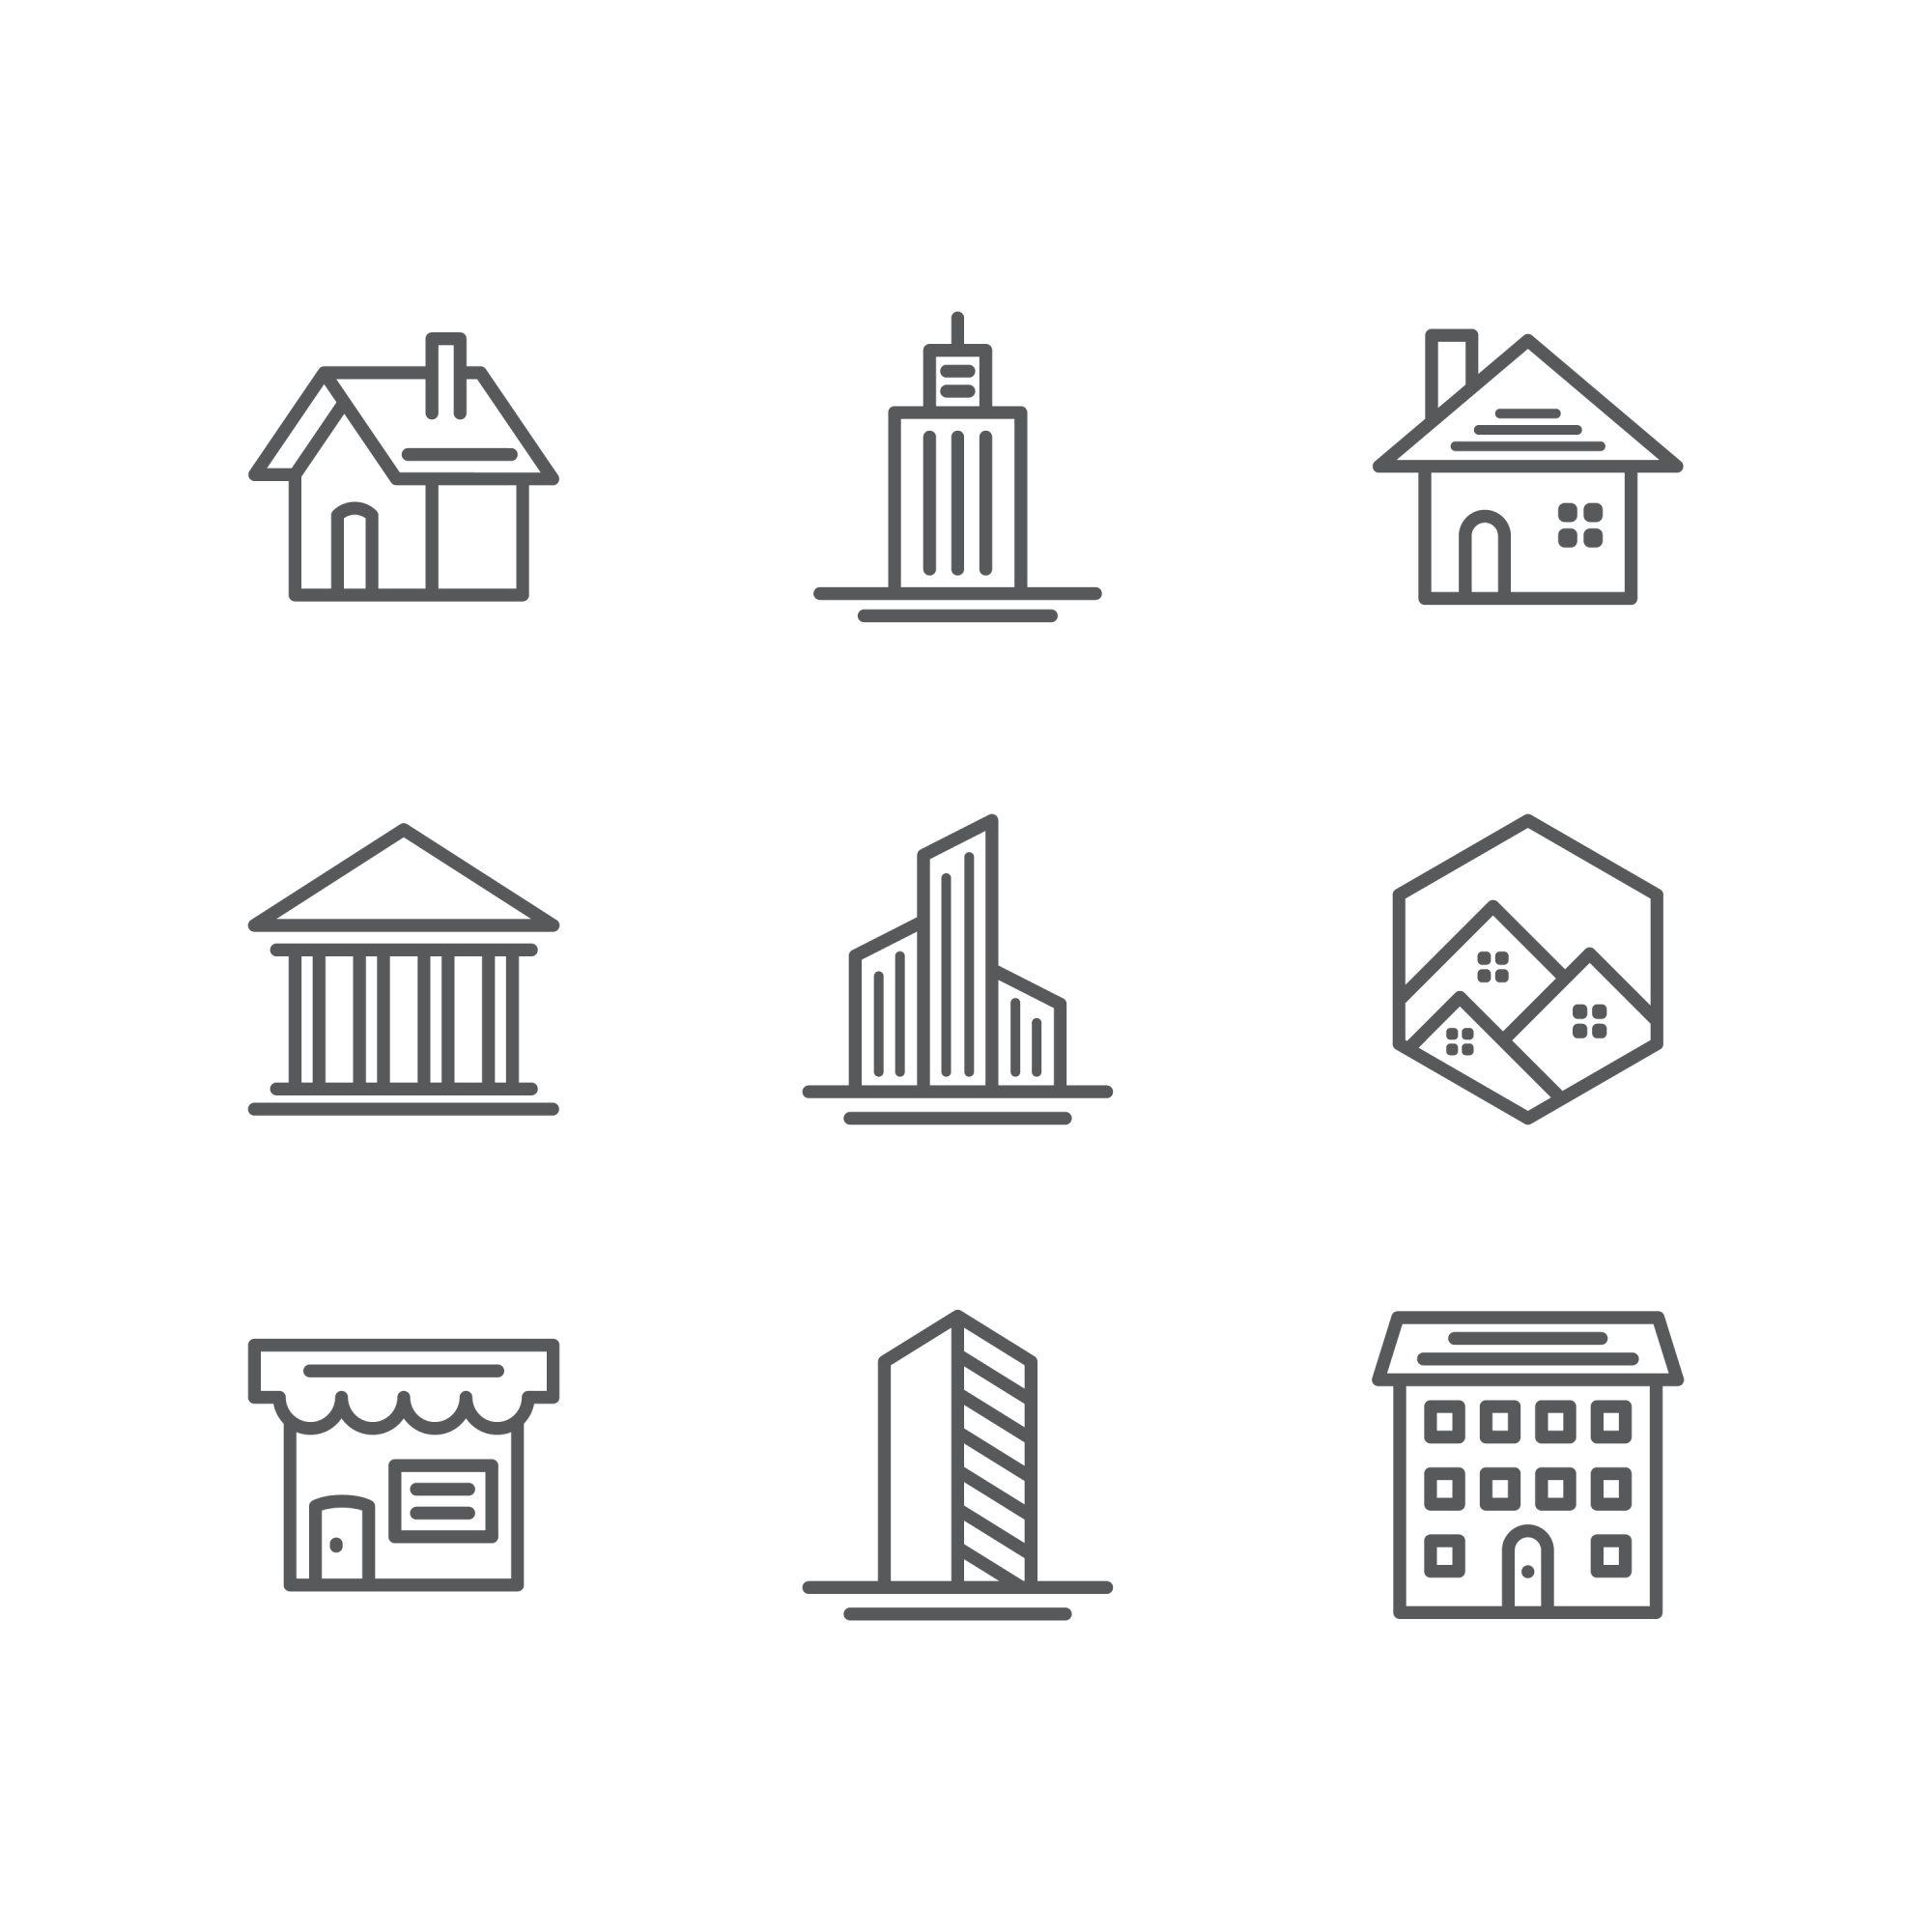 Building and real estate icons